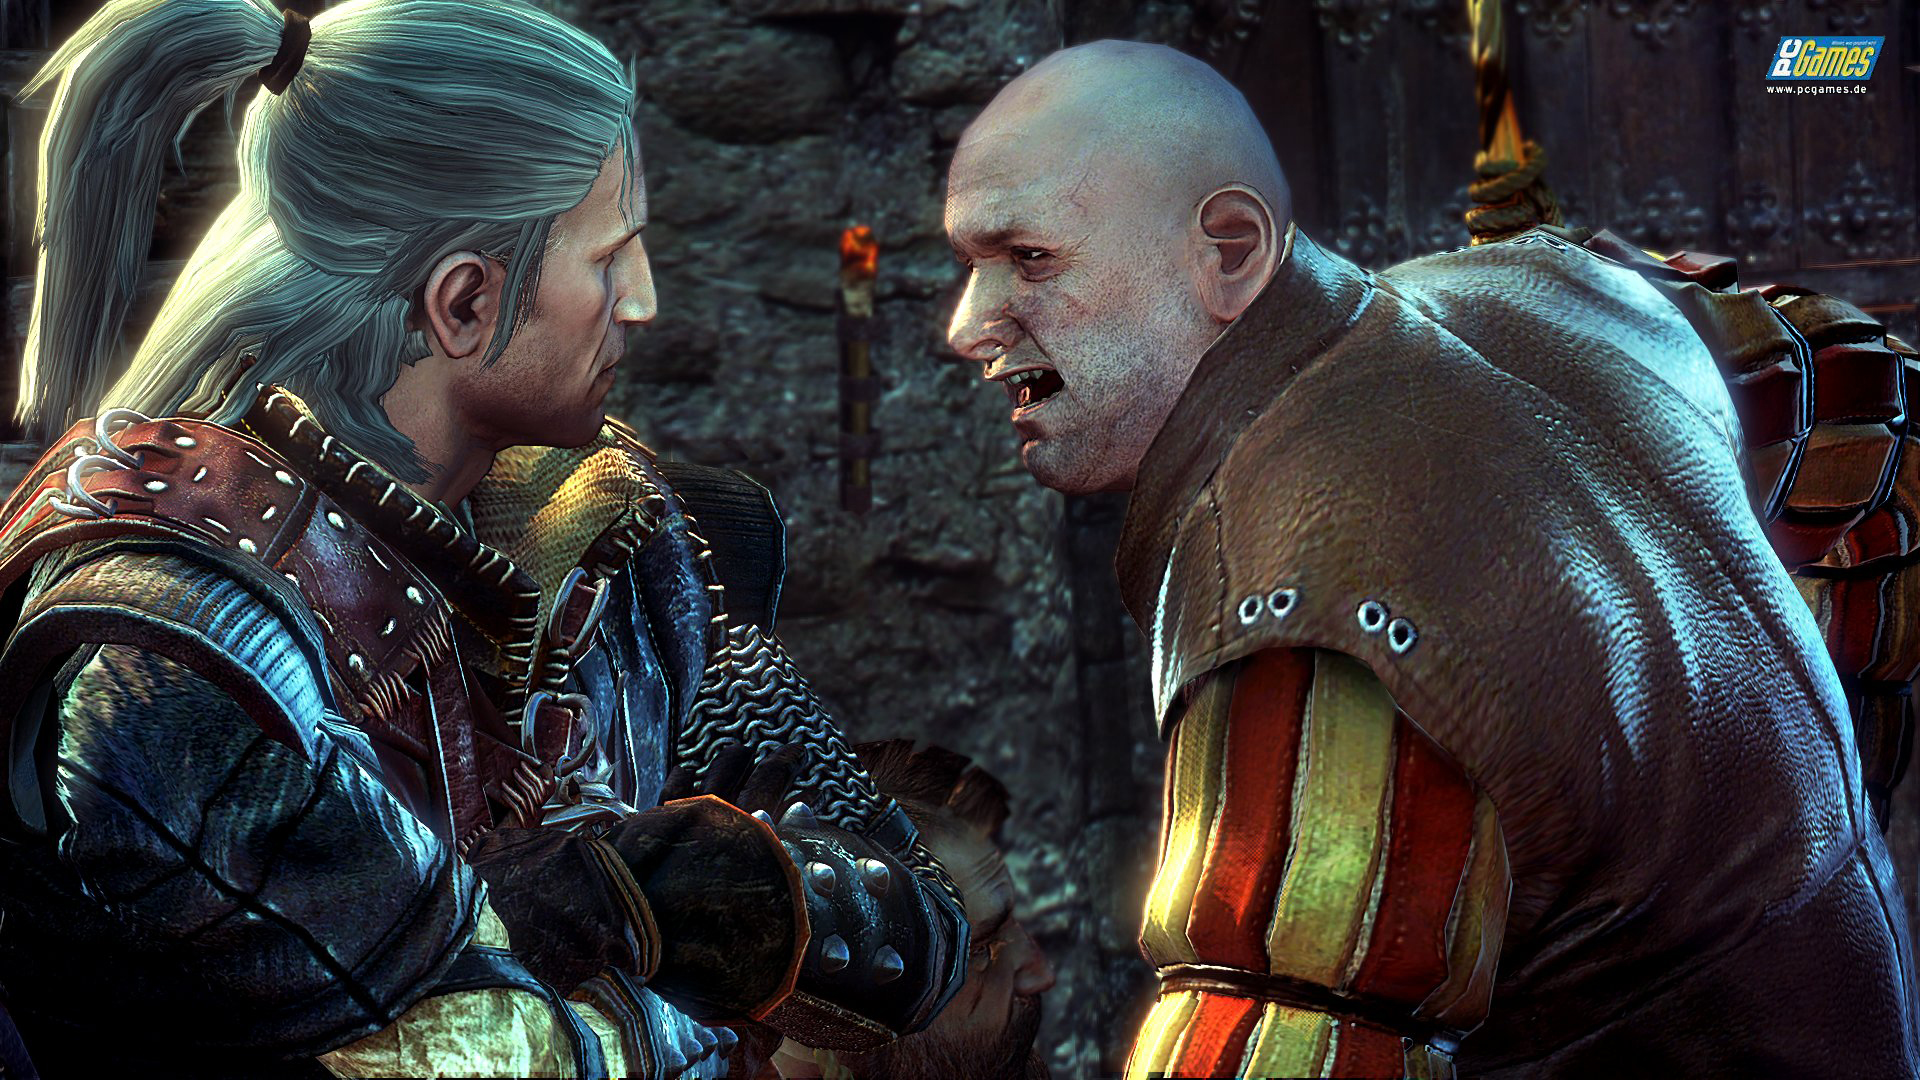 The Witcher 2: Assassins of Kings (3) [Source: CD Projekt]